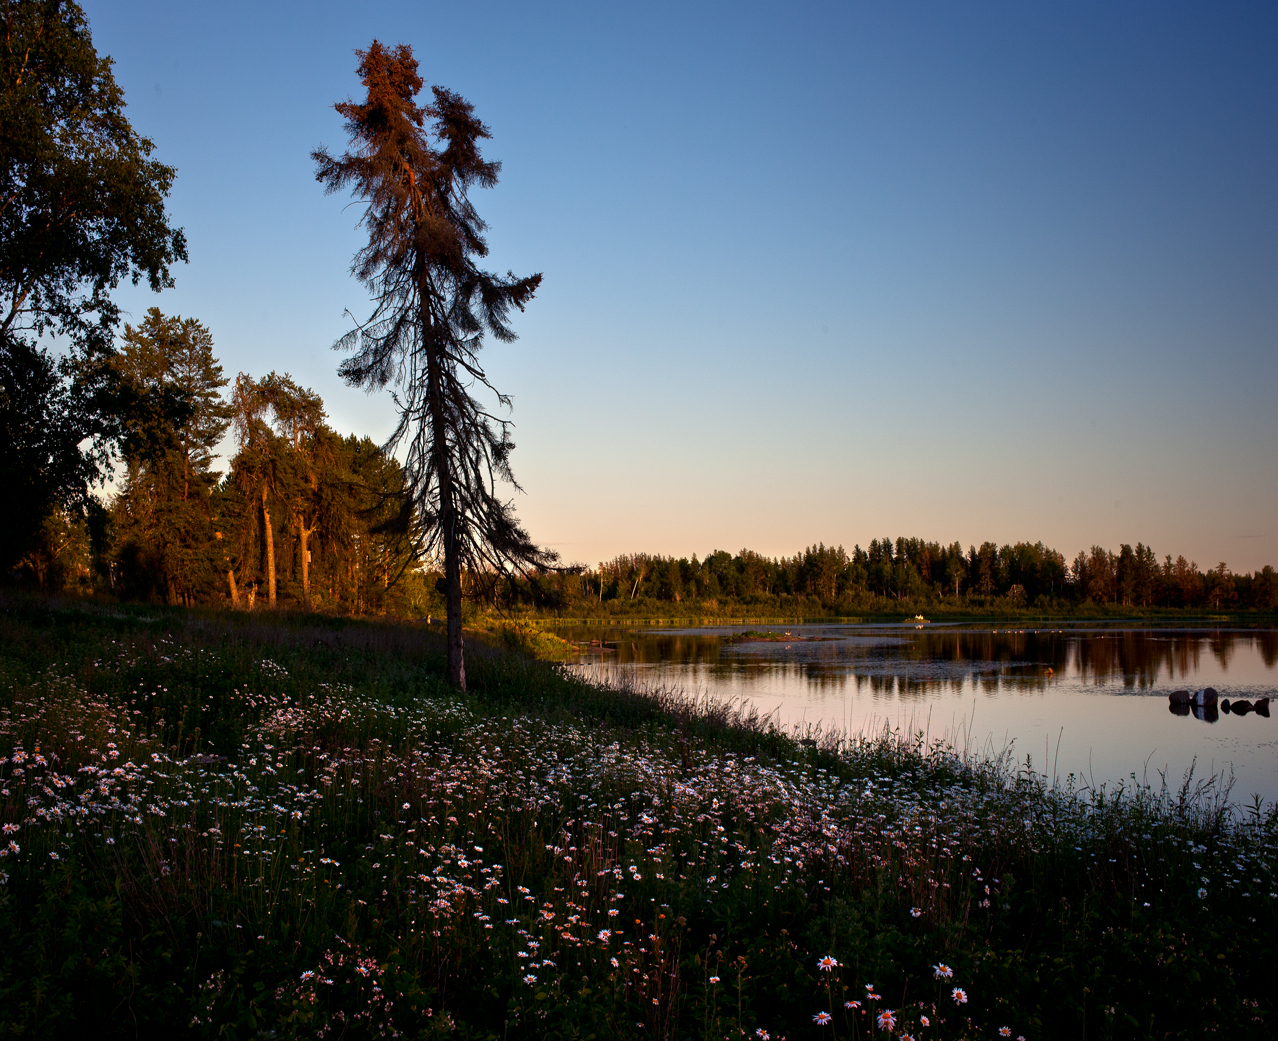 Flowers grow by a lake at sunset in the Whiteshell. © Robert Lowdon